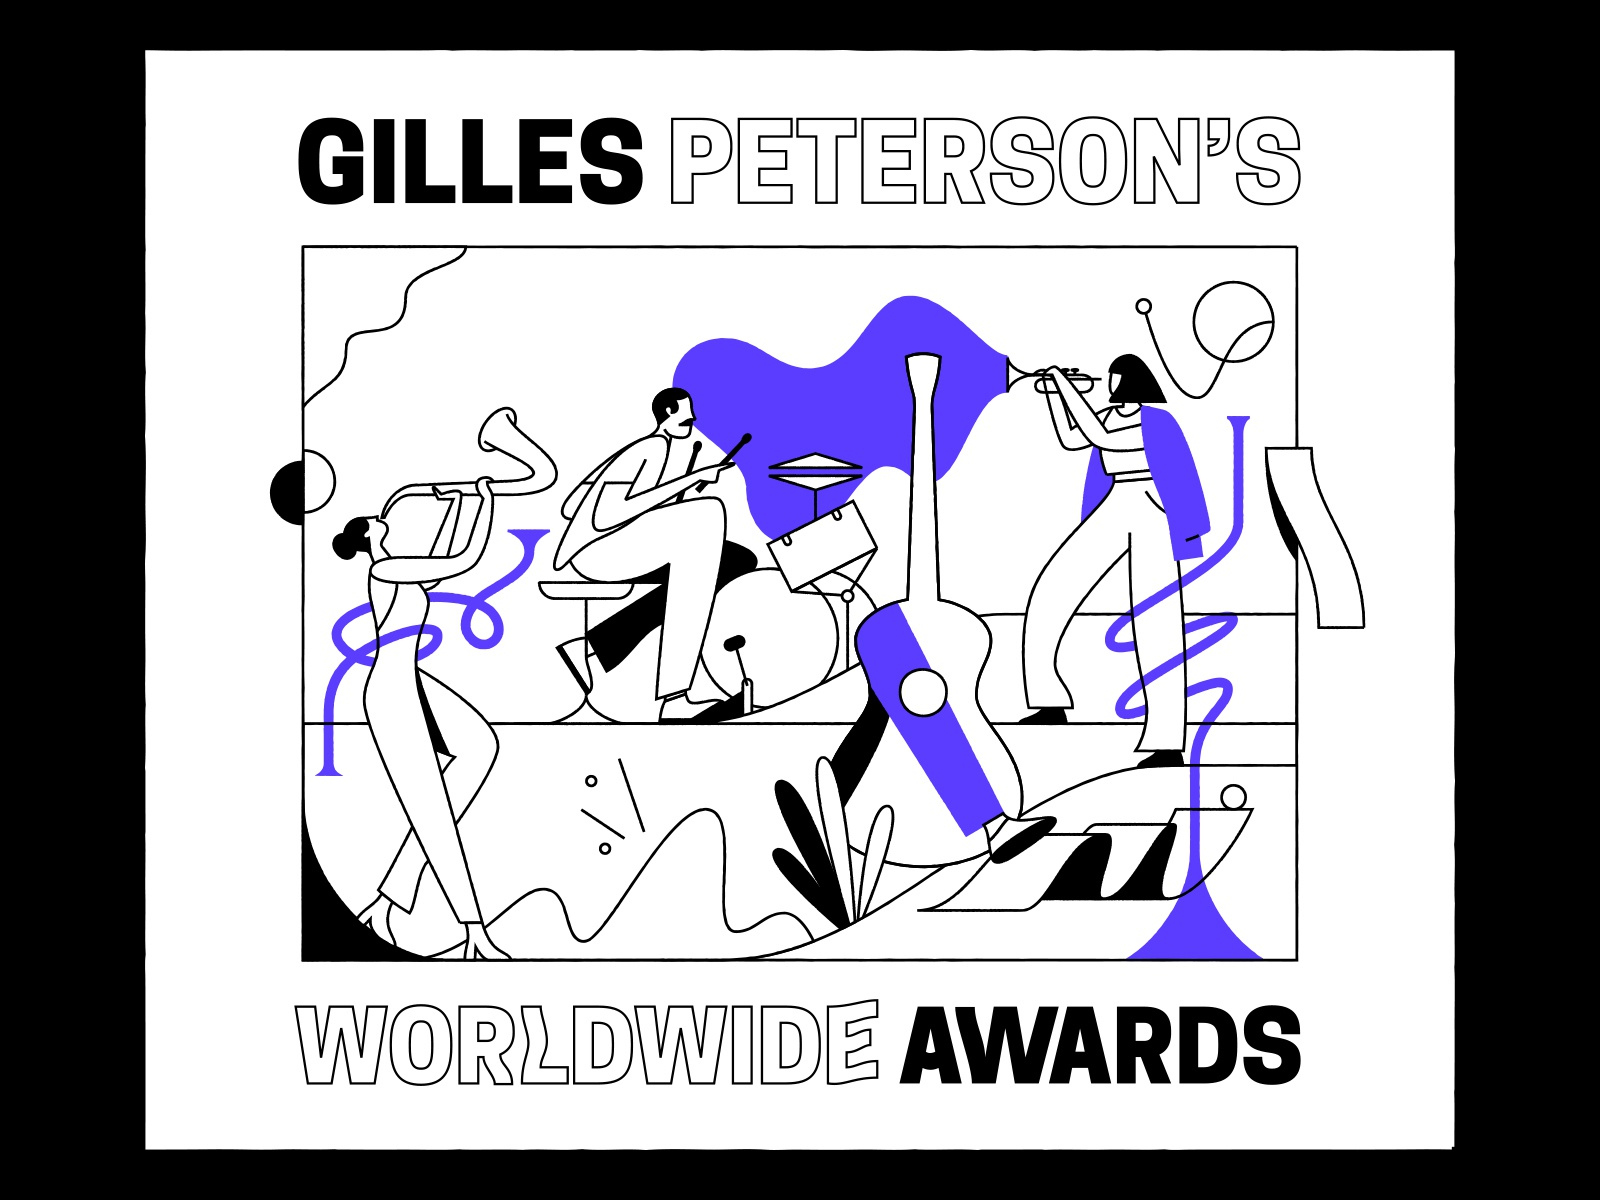 Gilles Peterson playing instruments music peterson gilles worldwide awards